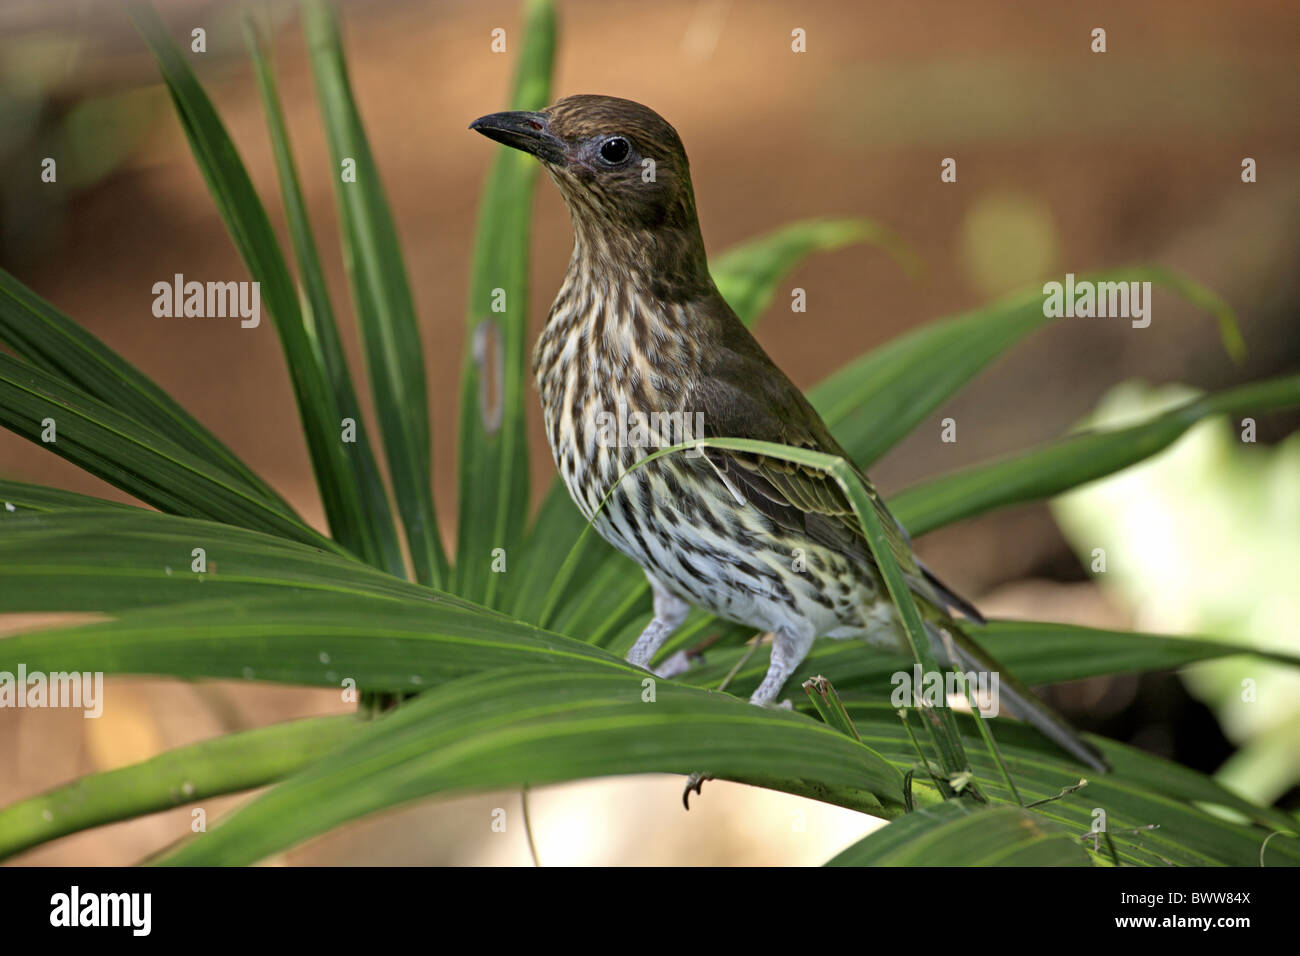 Green Figbird (Sphecotheres viridis) adult female, perched on frond, Australia Stock Photo